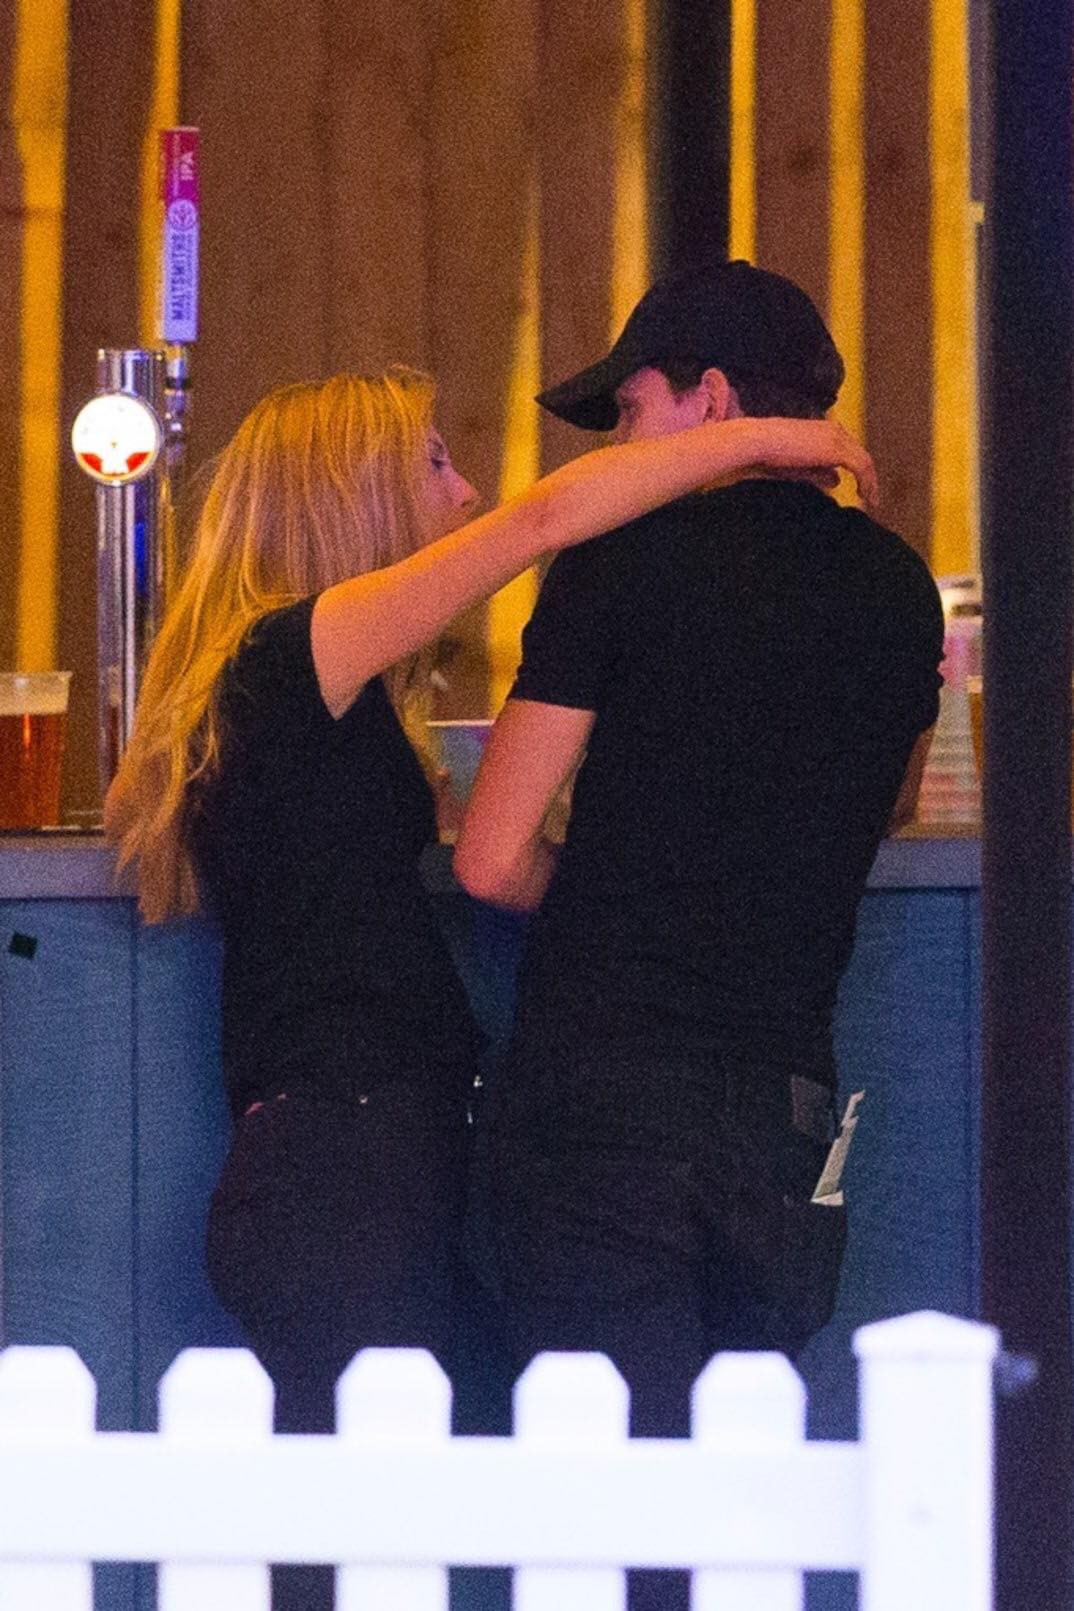 Spider-Man Tom Holland was caught in close contact with strange girls, but why are two younger older people different from their mothers? - Picture 3.